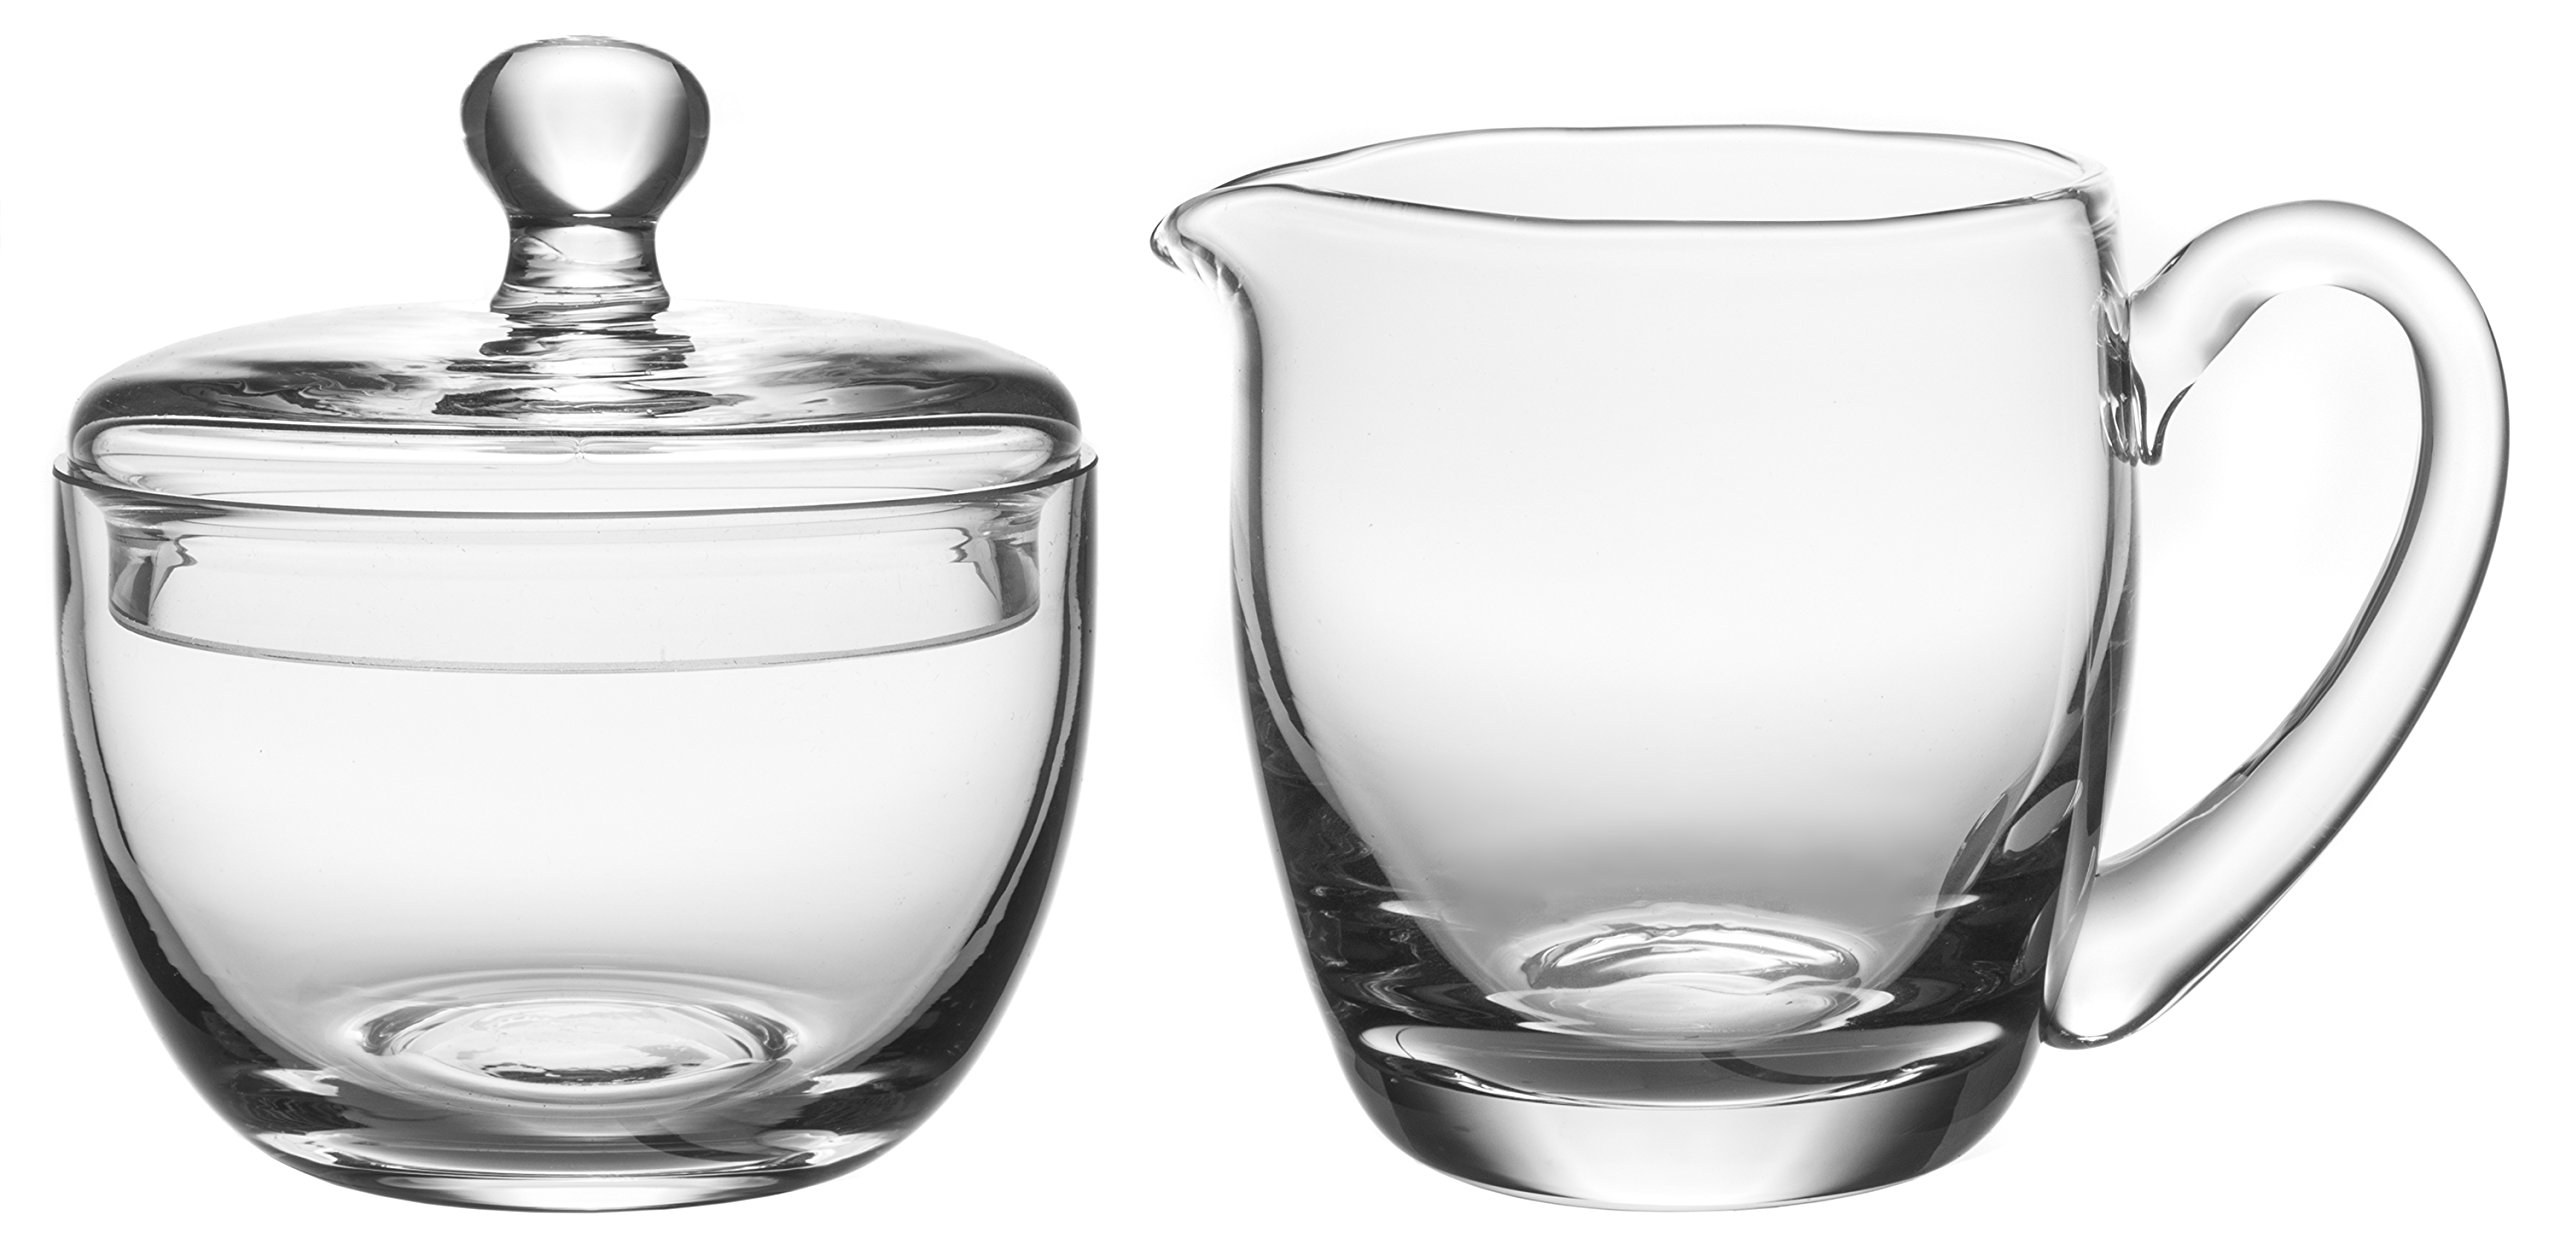 Hand Crafted Crystal Clear Glass Multipurpose Sugar Bowl & Creamer Set, 4-inch